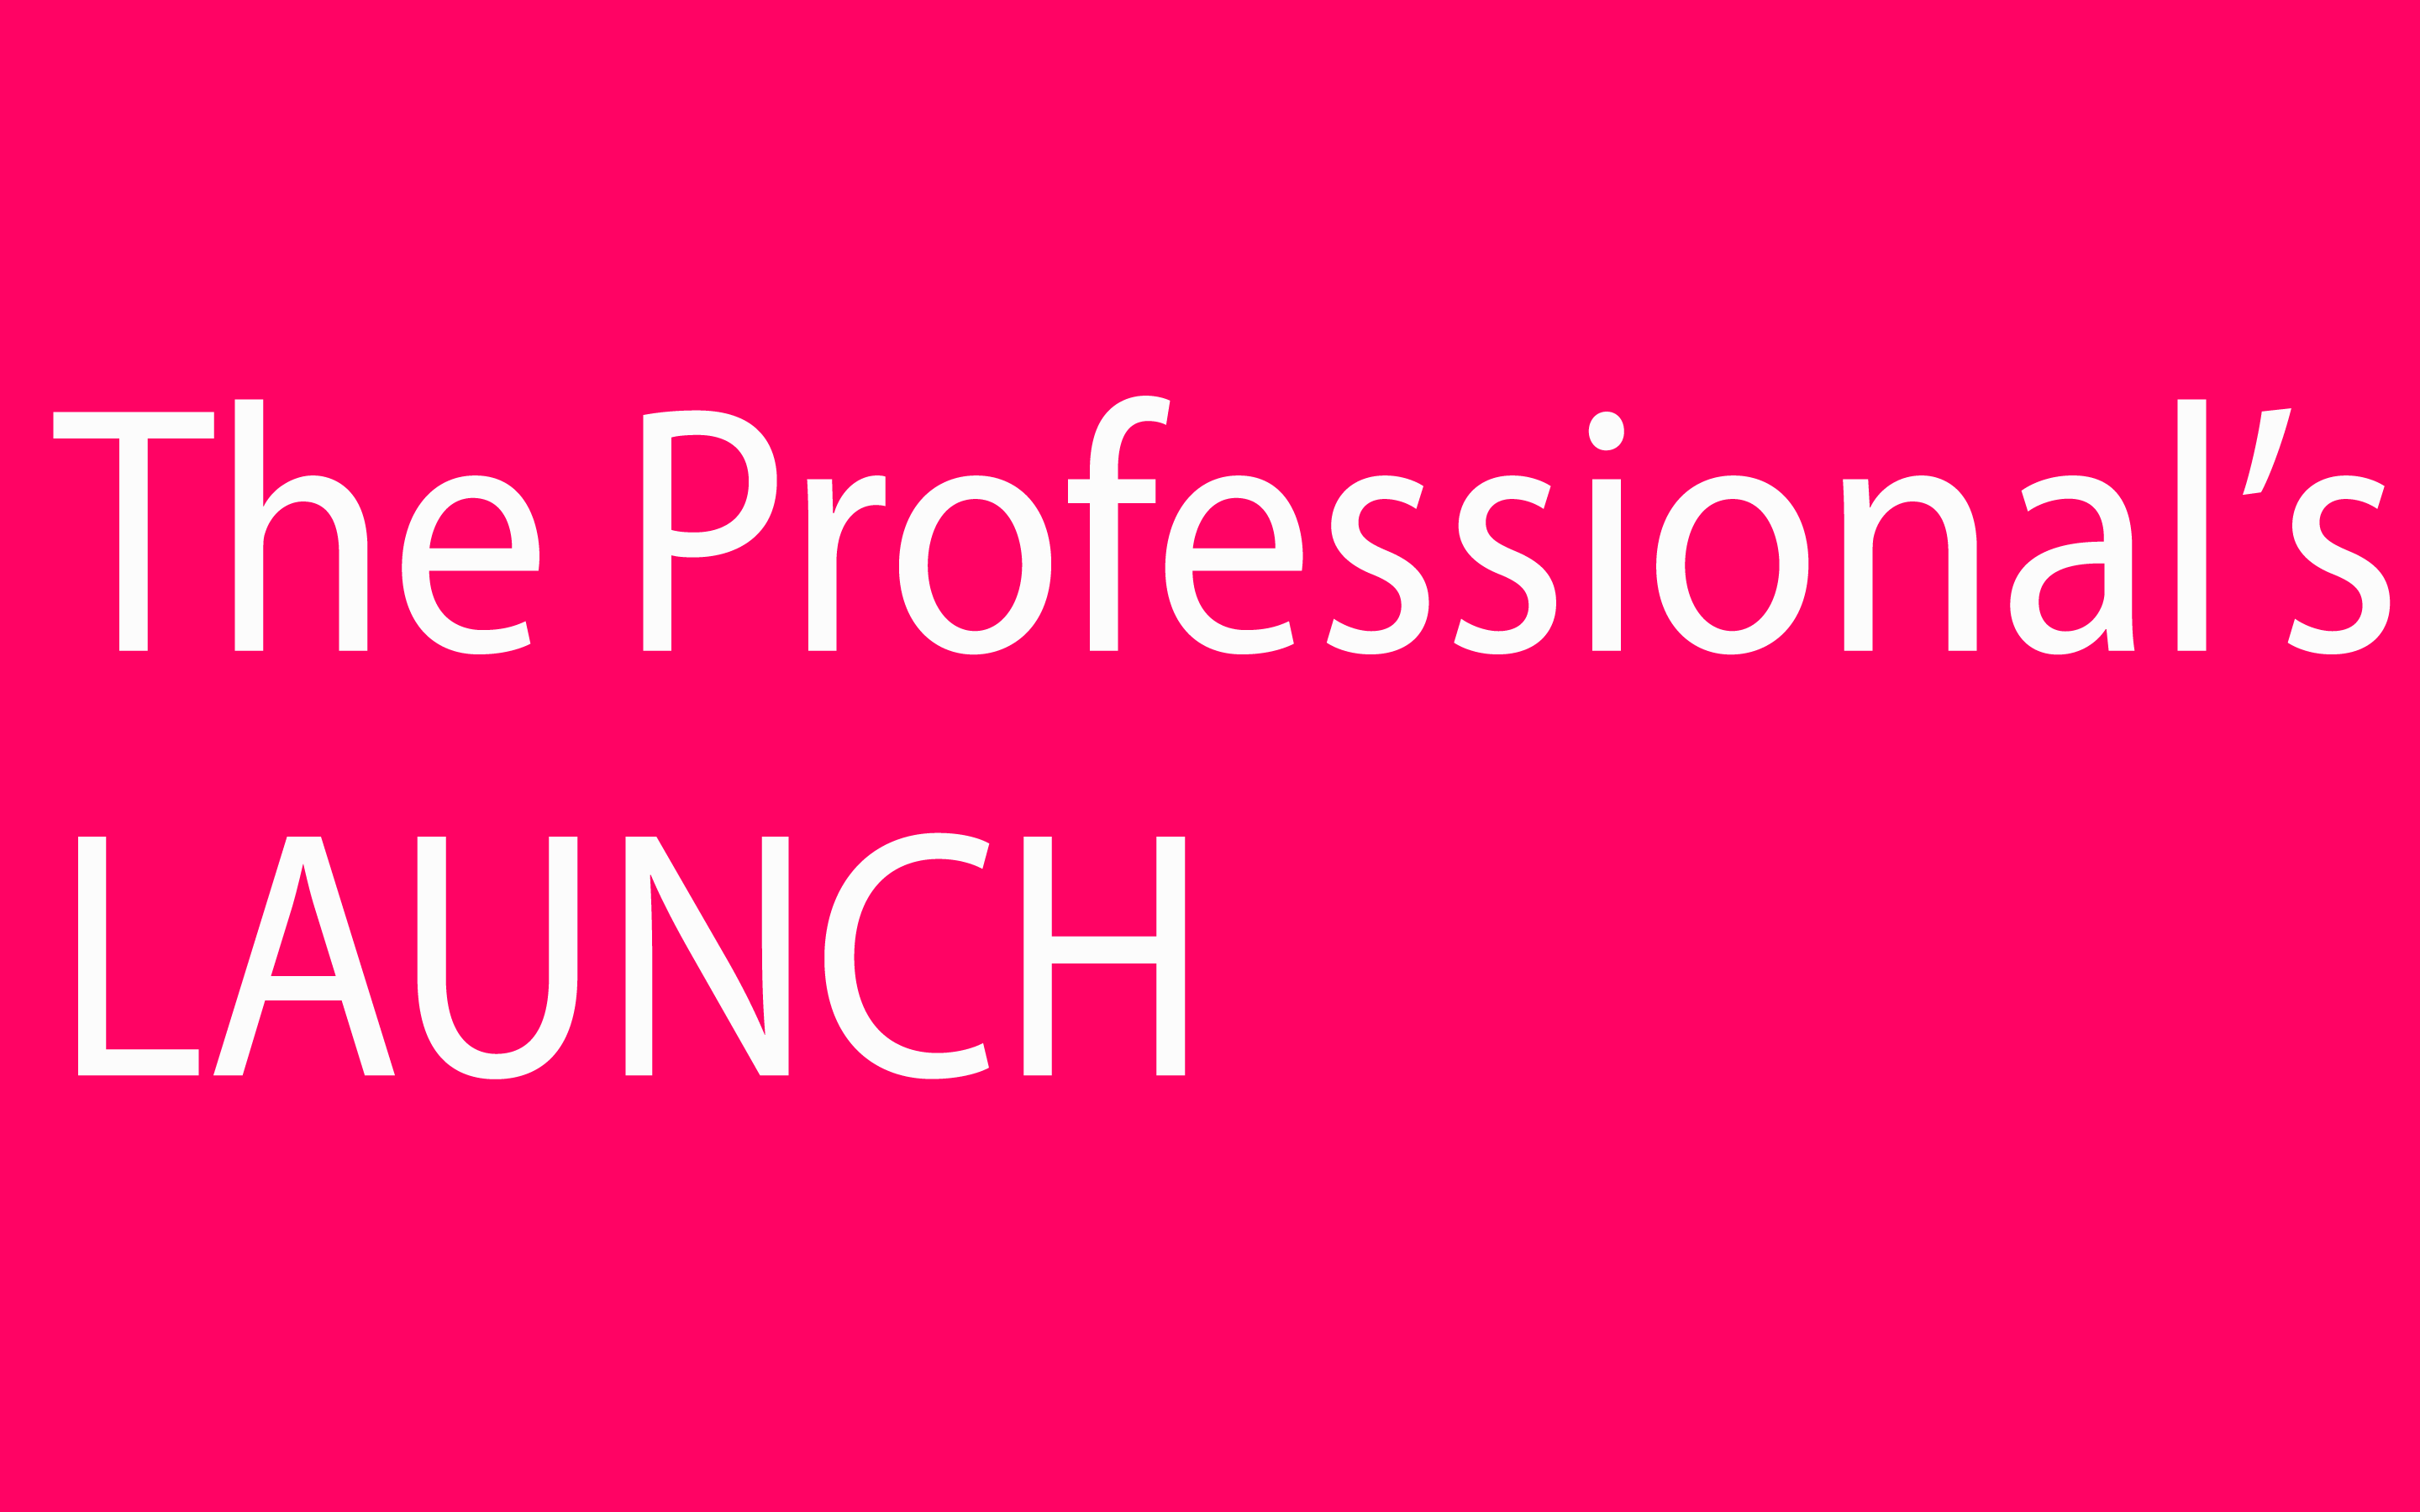 The Professional's Launch